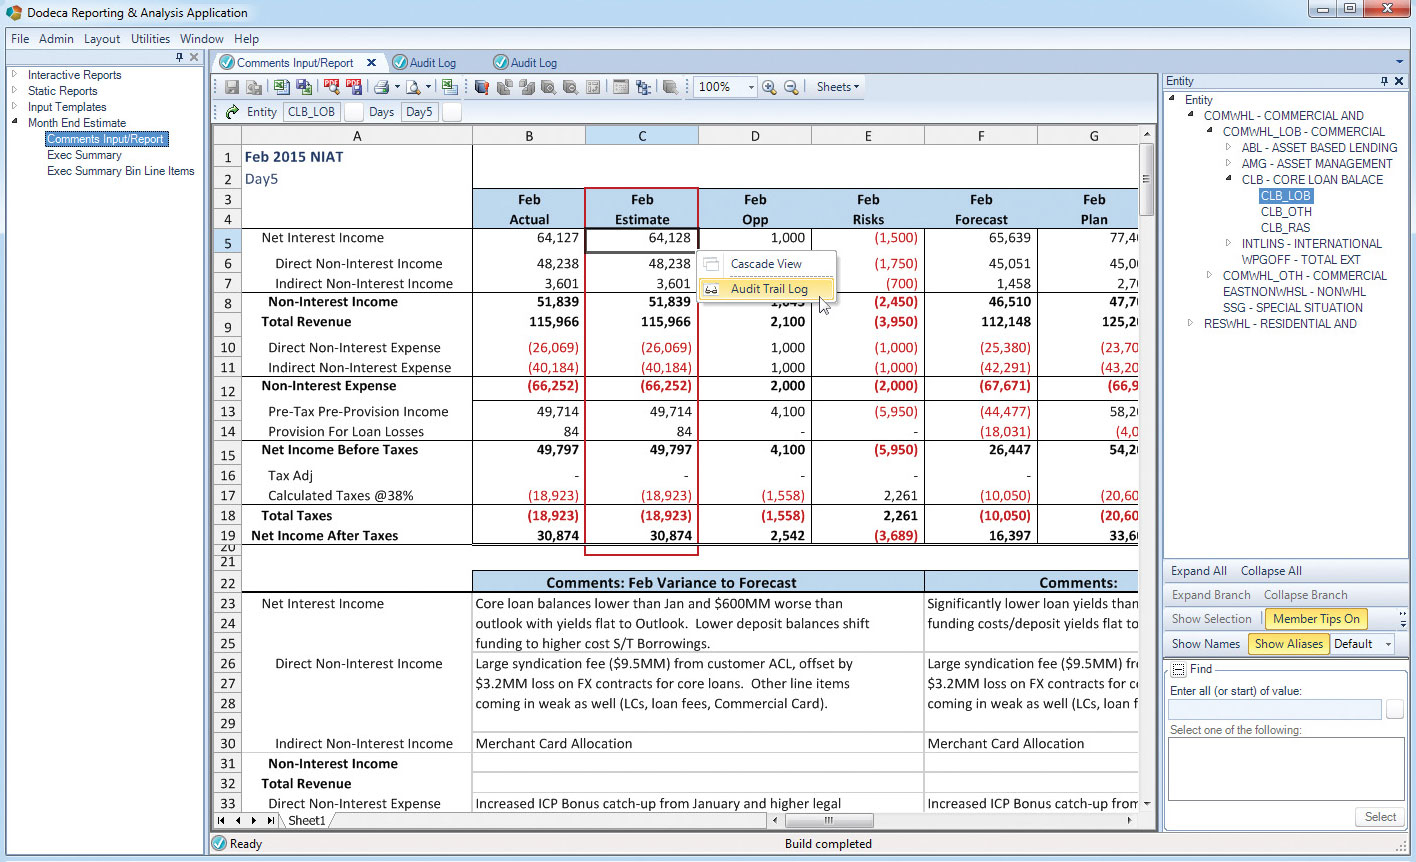 Convenience Store Accounting Spreadsheet With Regard To Managing Spreadsheet Risk: Dodeca Spreadsheet Management System